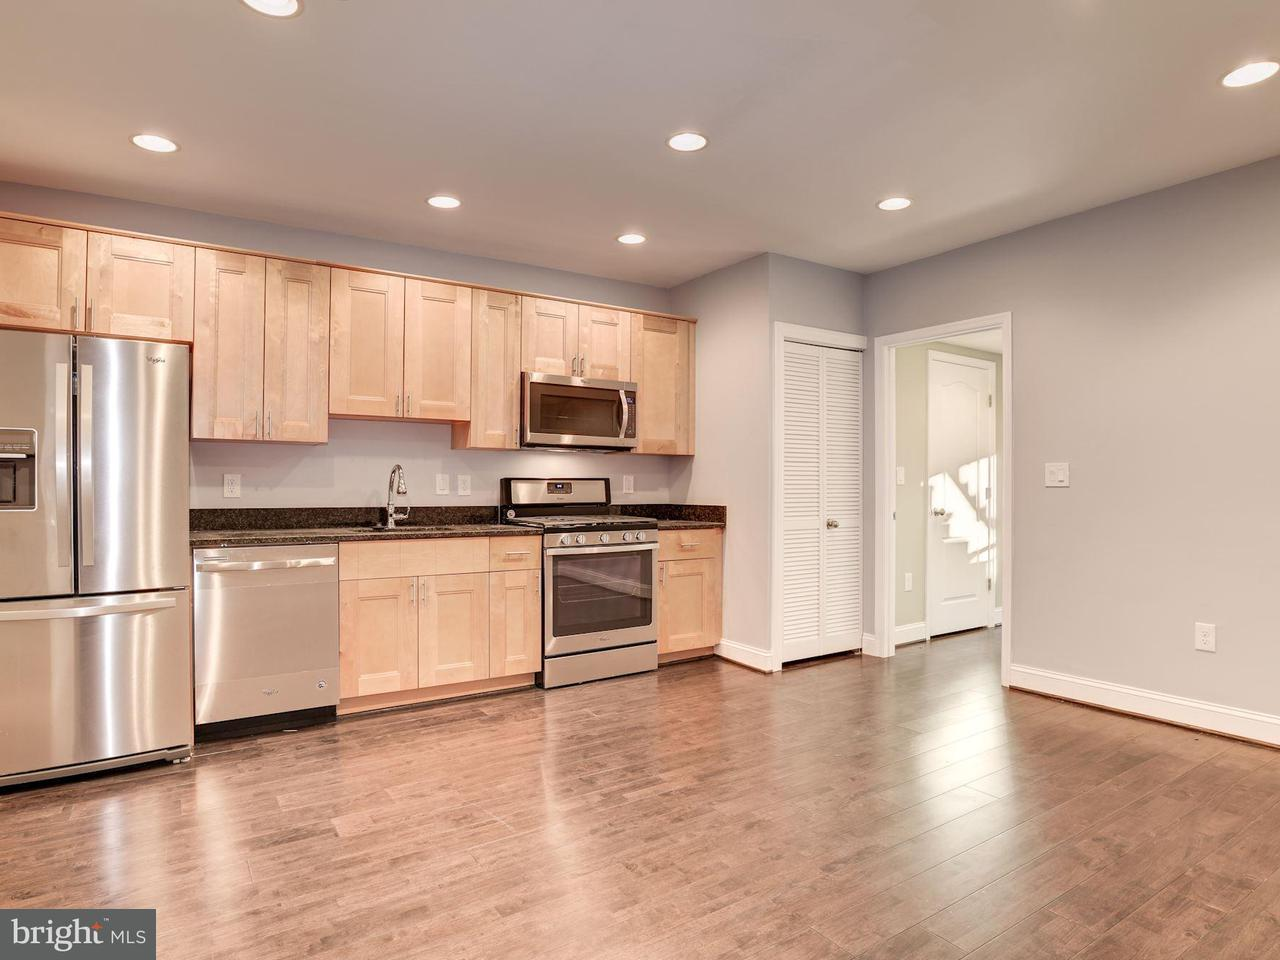 Additional photo for property listing at 1363 Childress St NE #2  Washington, District Of Columbia 20002 United States